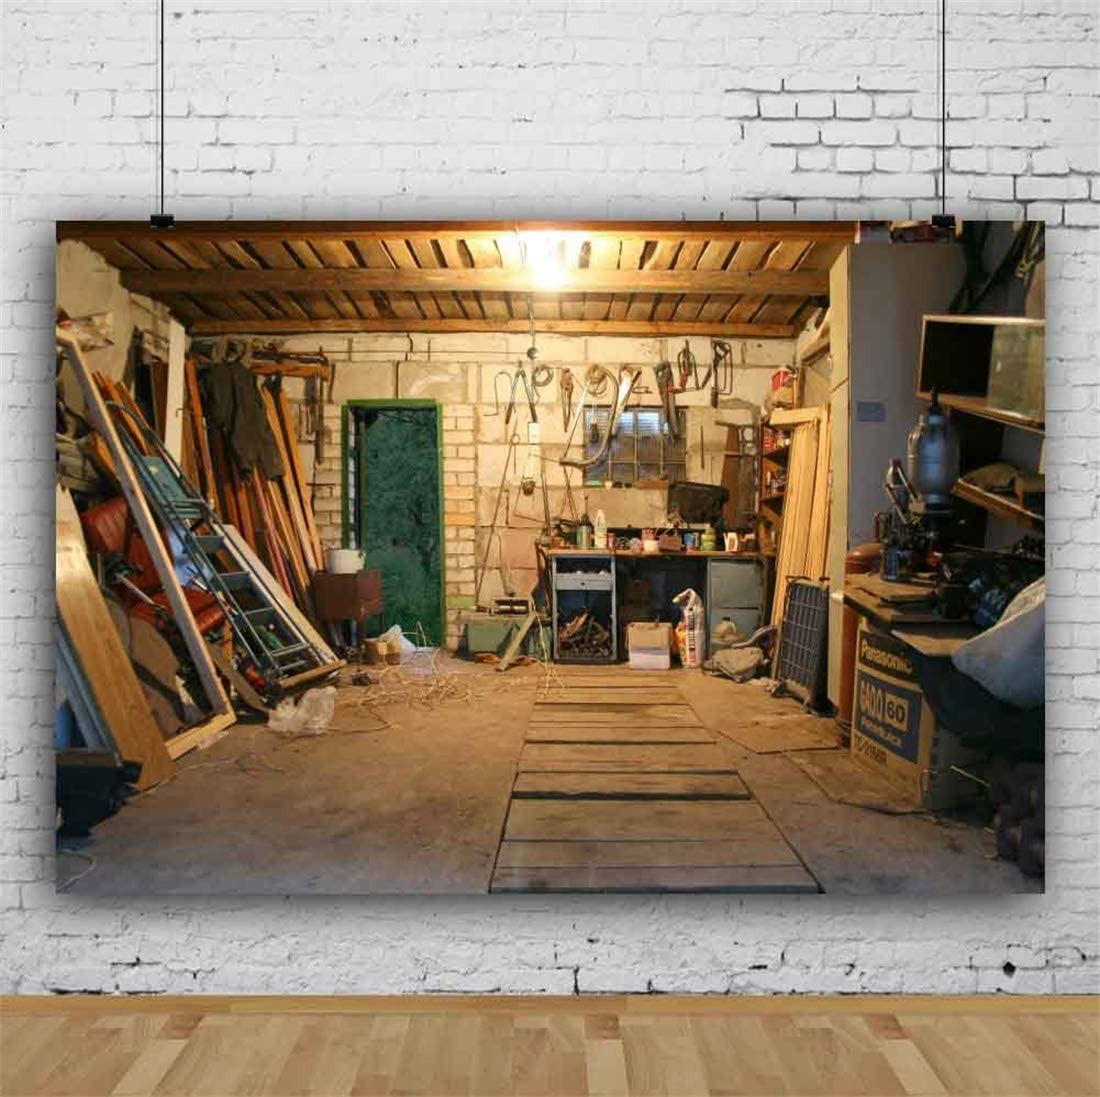 Yeele 10x8ft Western Saloon Wild Photography Background Gold Rush Dried Fish Bench Rope Board Cupboard Boiler West Brown Mottled Weathering Wooden Saloon Photo Backdrops Pictures Photoshoot